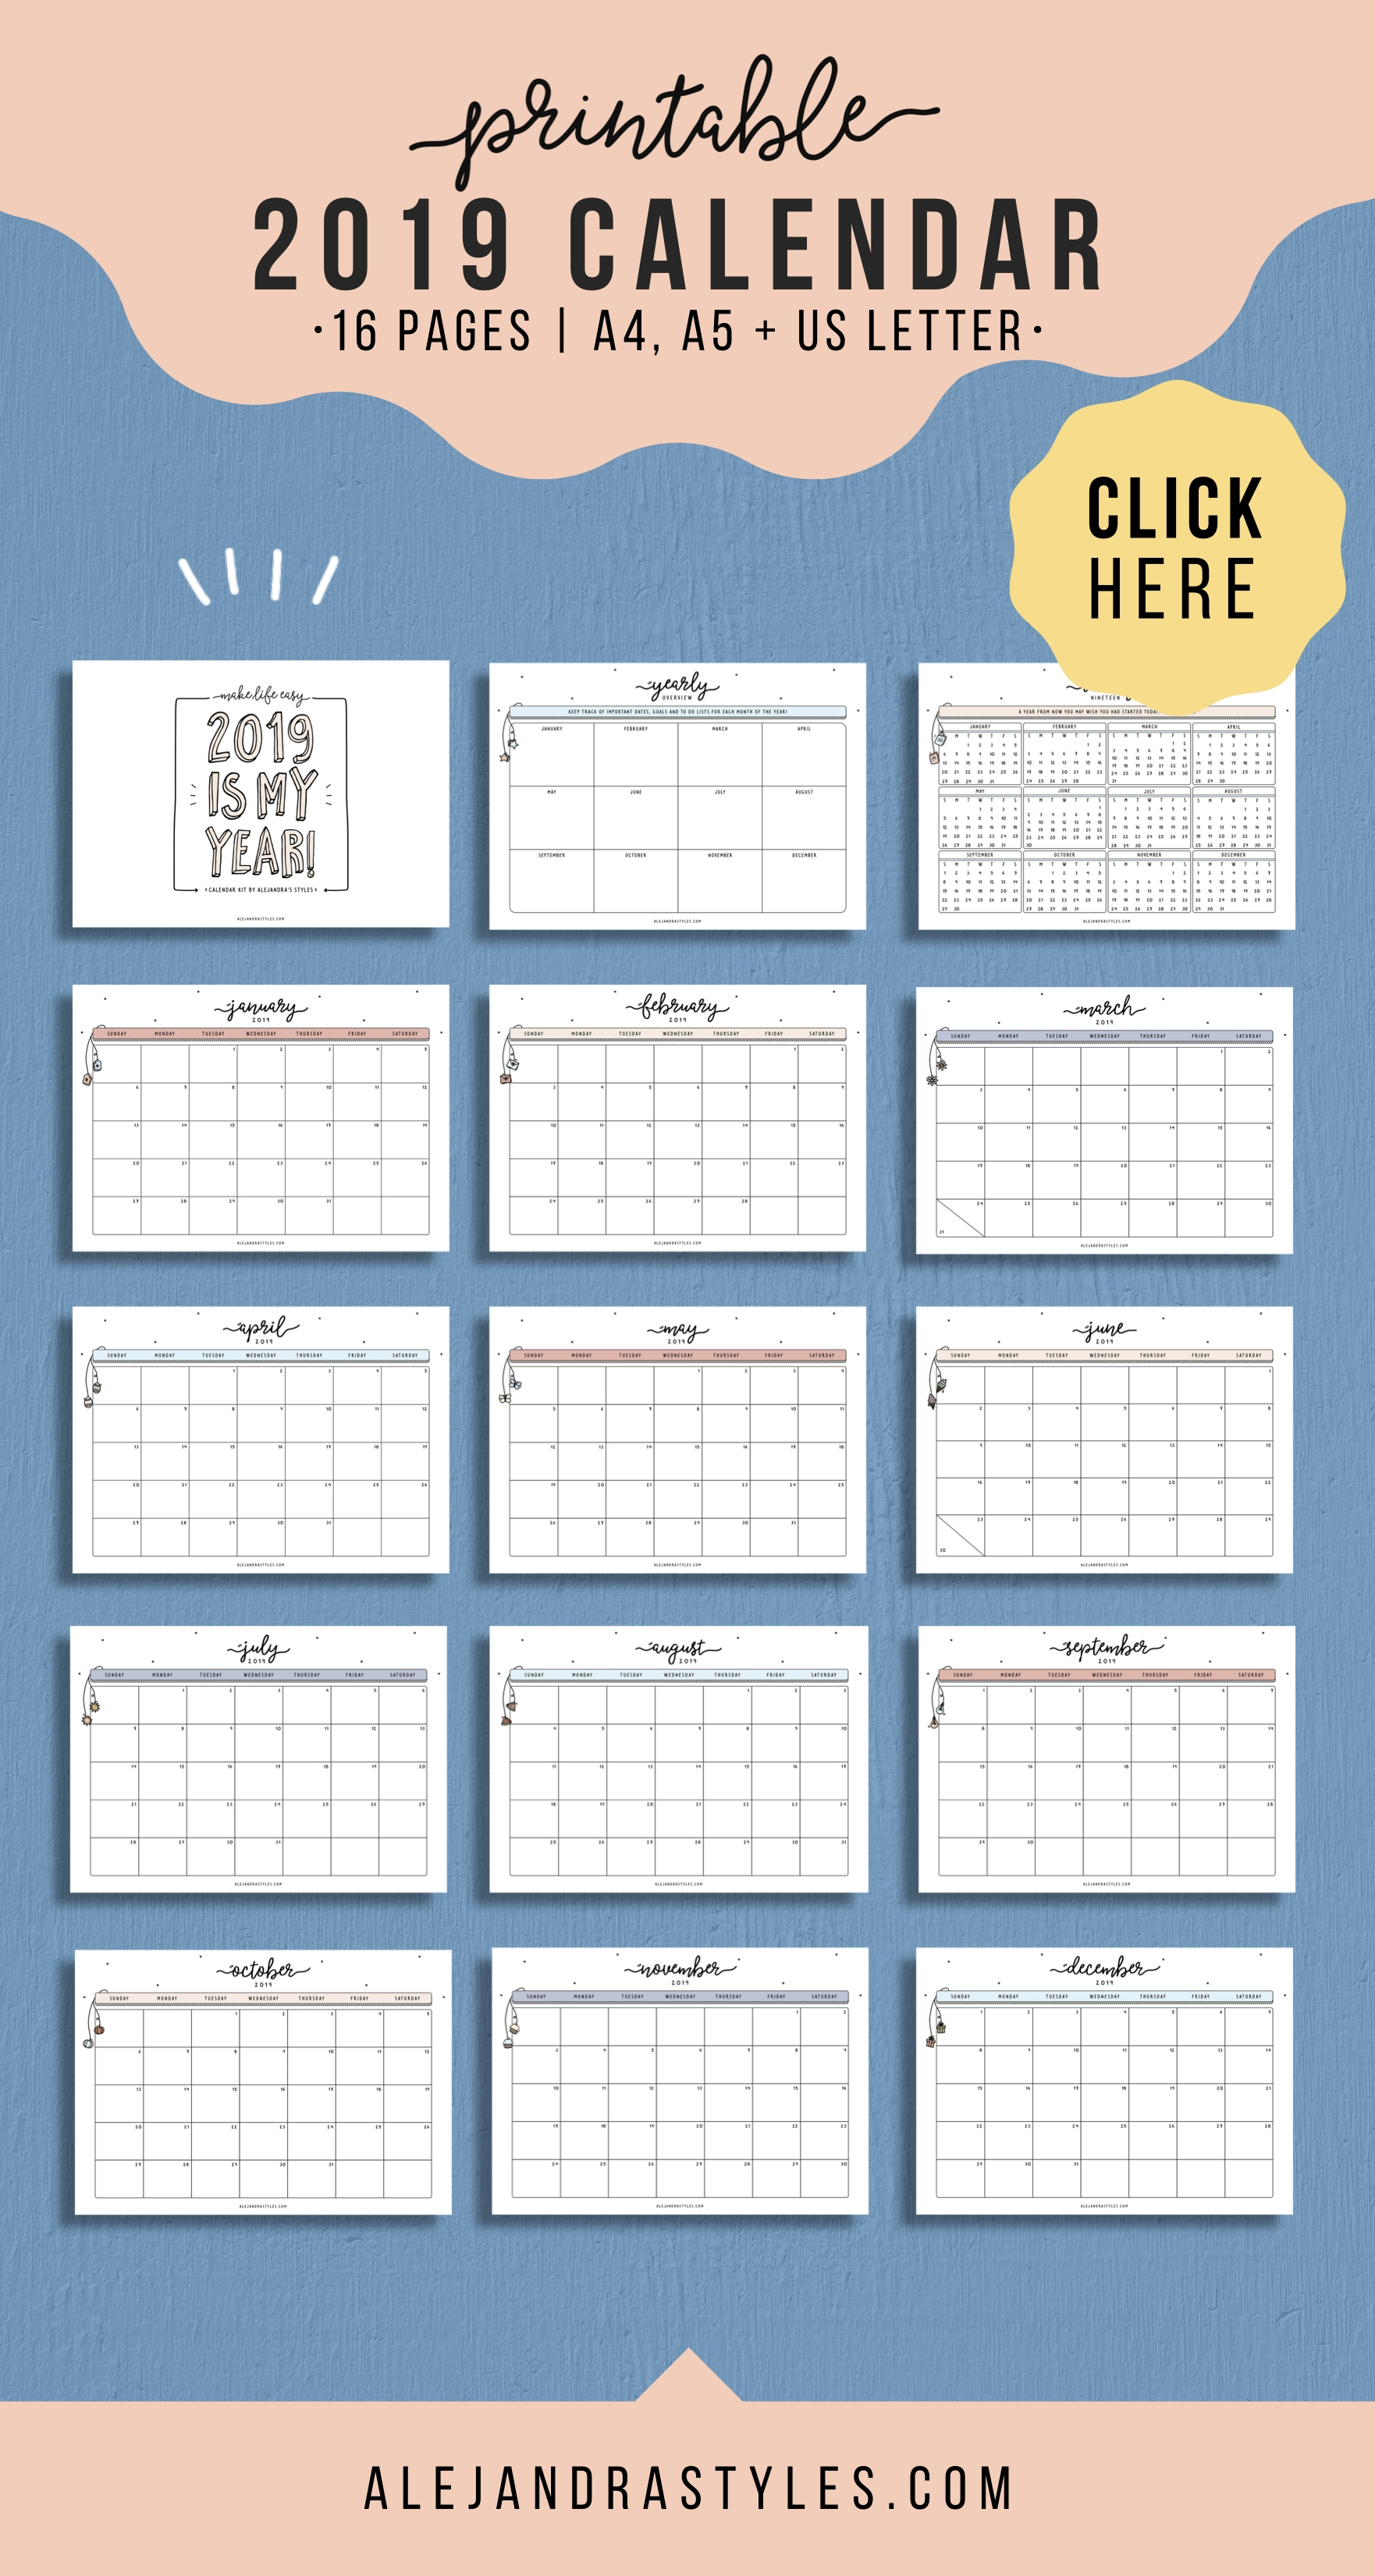 2019 Calendar Printable Planner For Desk Or Wall | Monday-At A Glance Monthly Calendar Printable